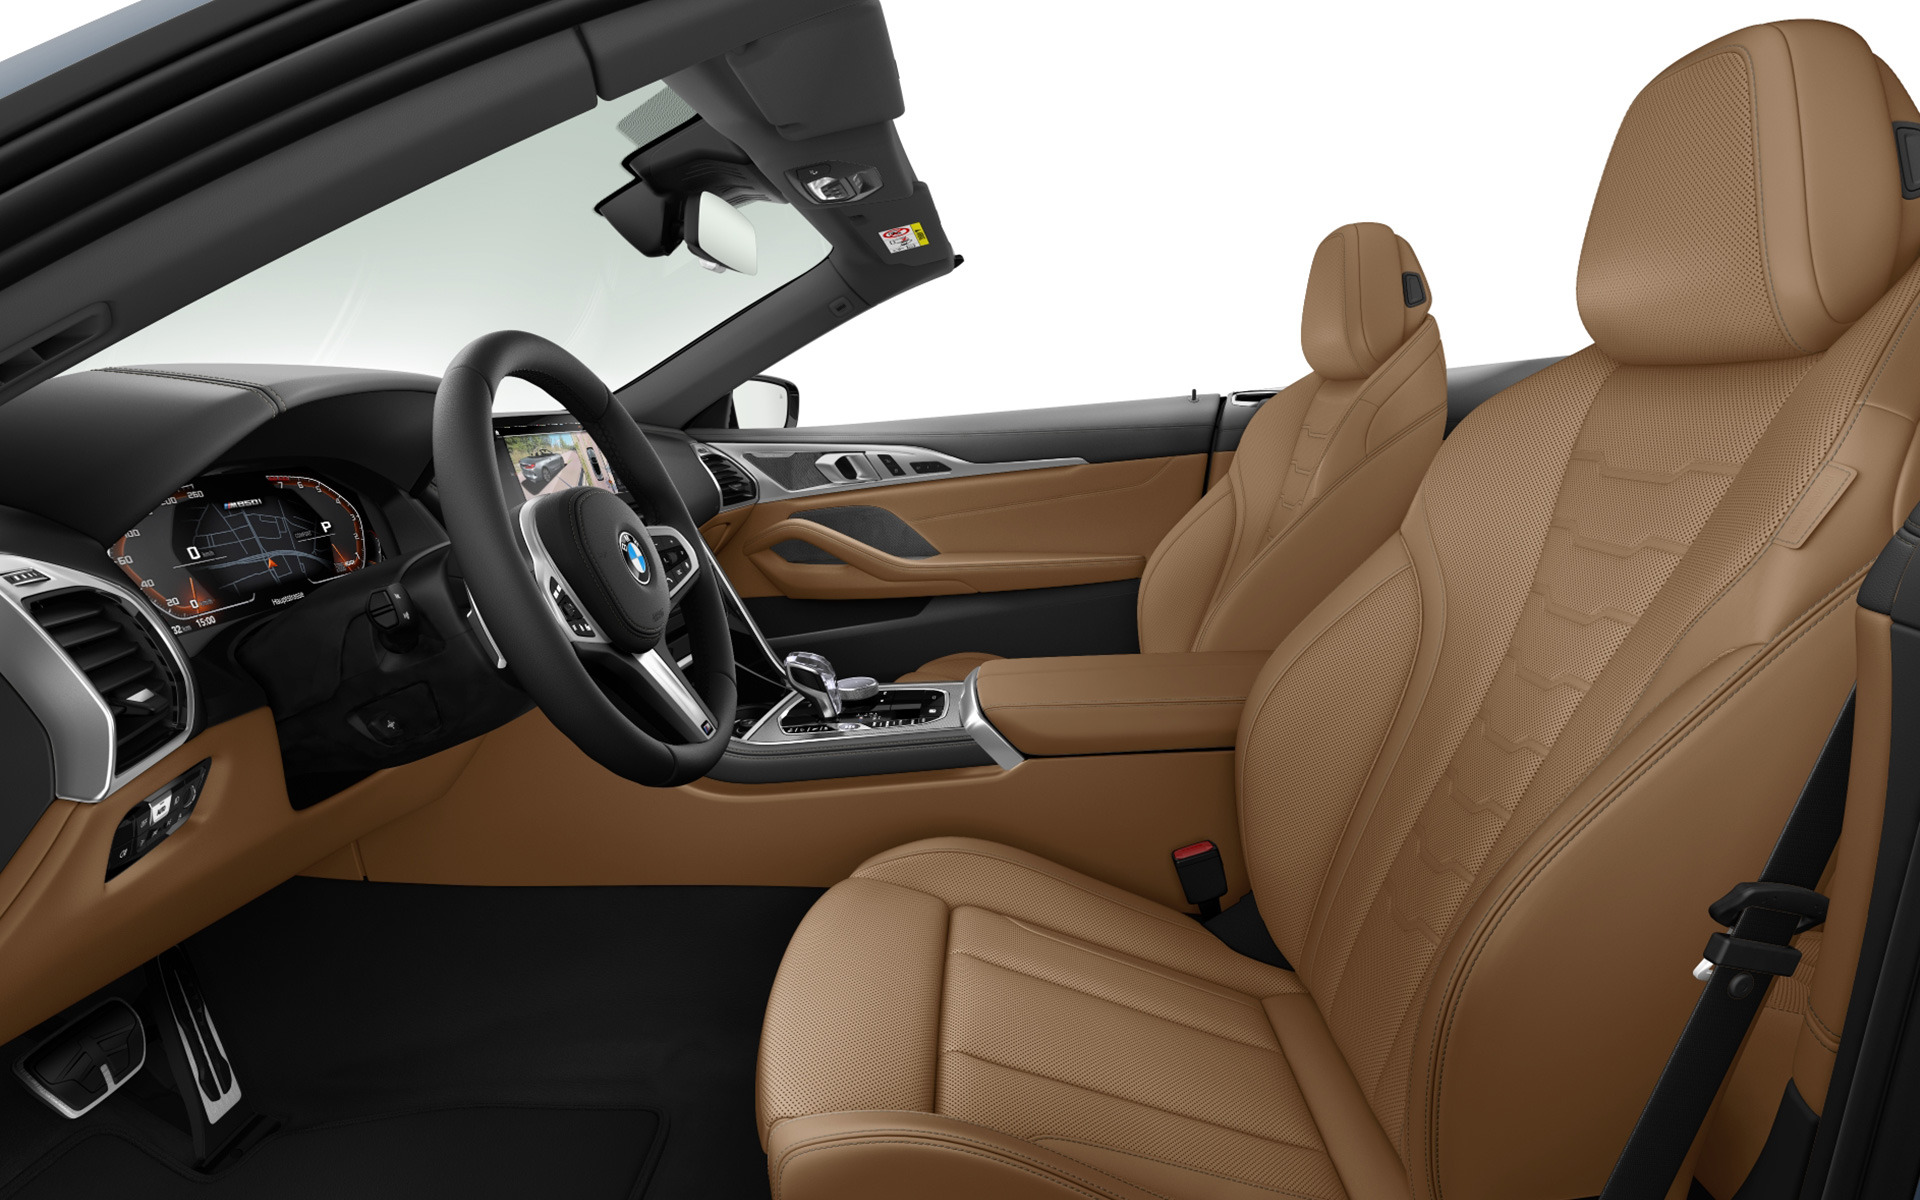 BMW Individual extended leather trim Merino Cognac | Black